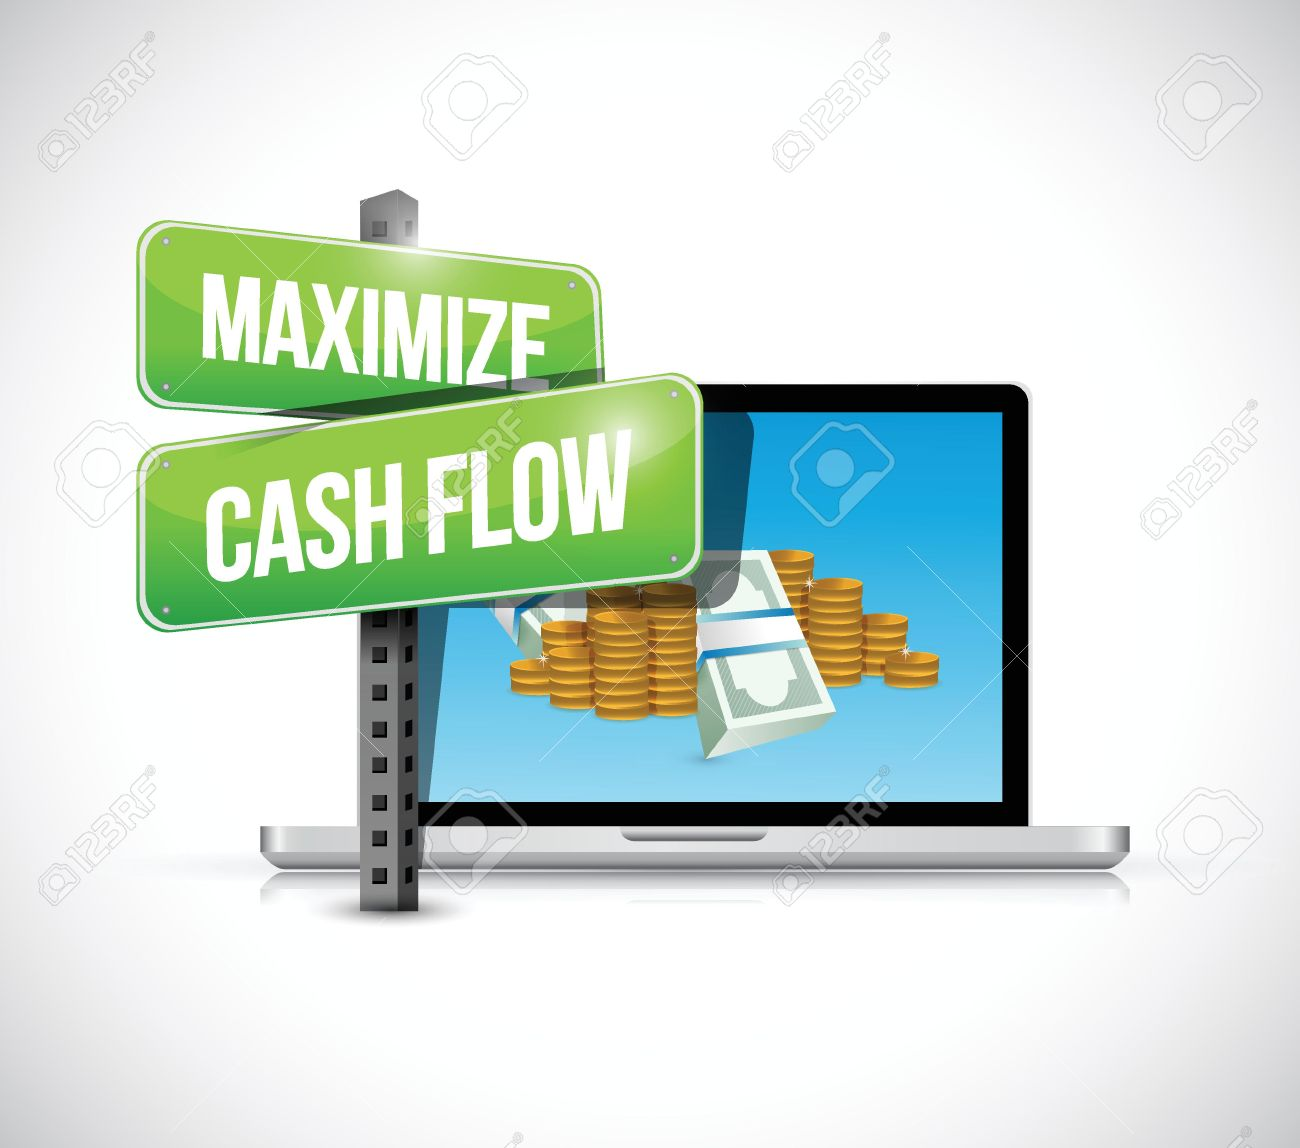 Maximize Cash Flow Technology Sign Illustration Design Over White.